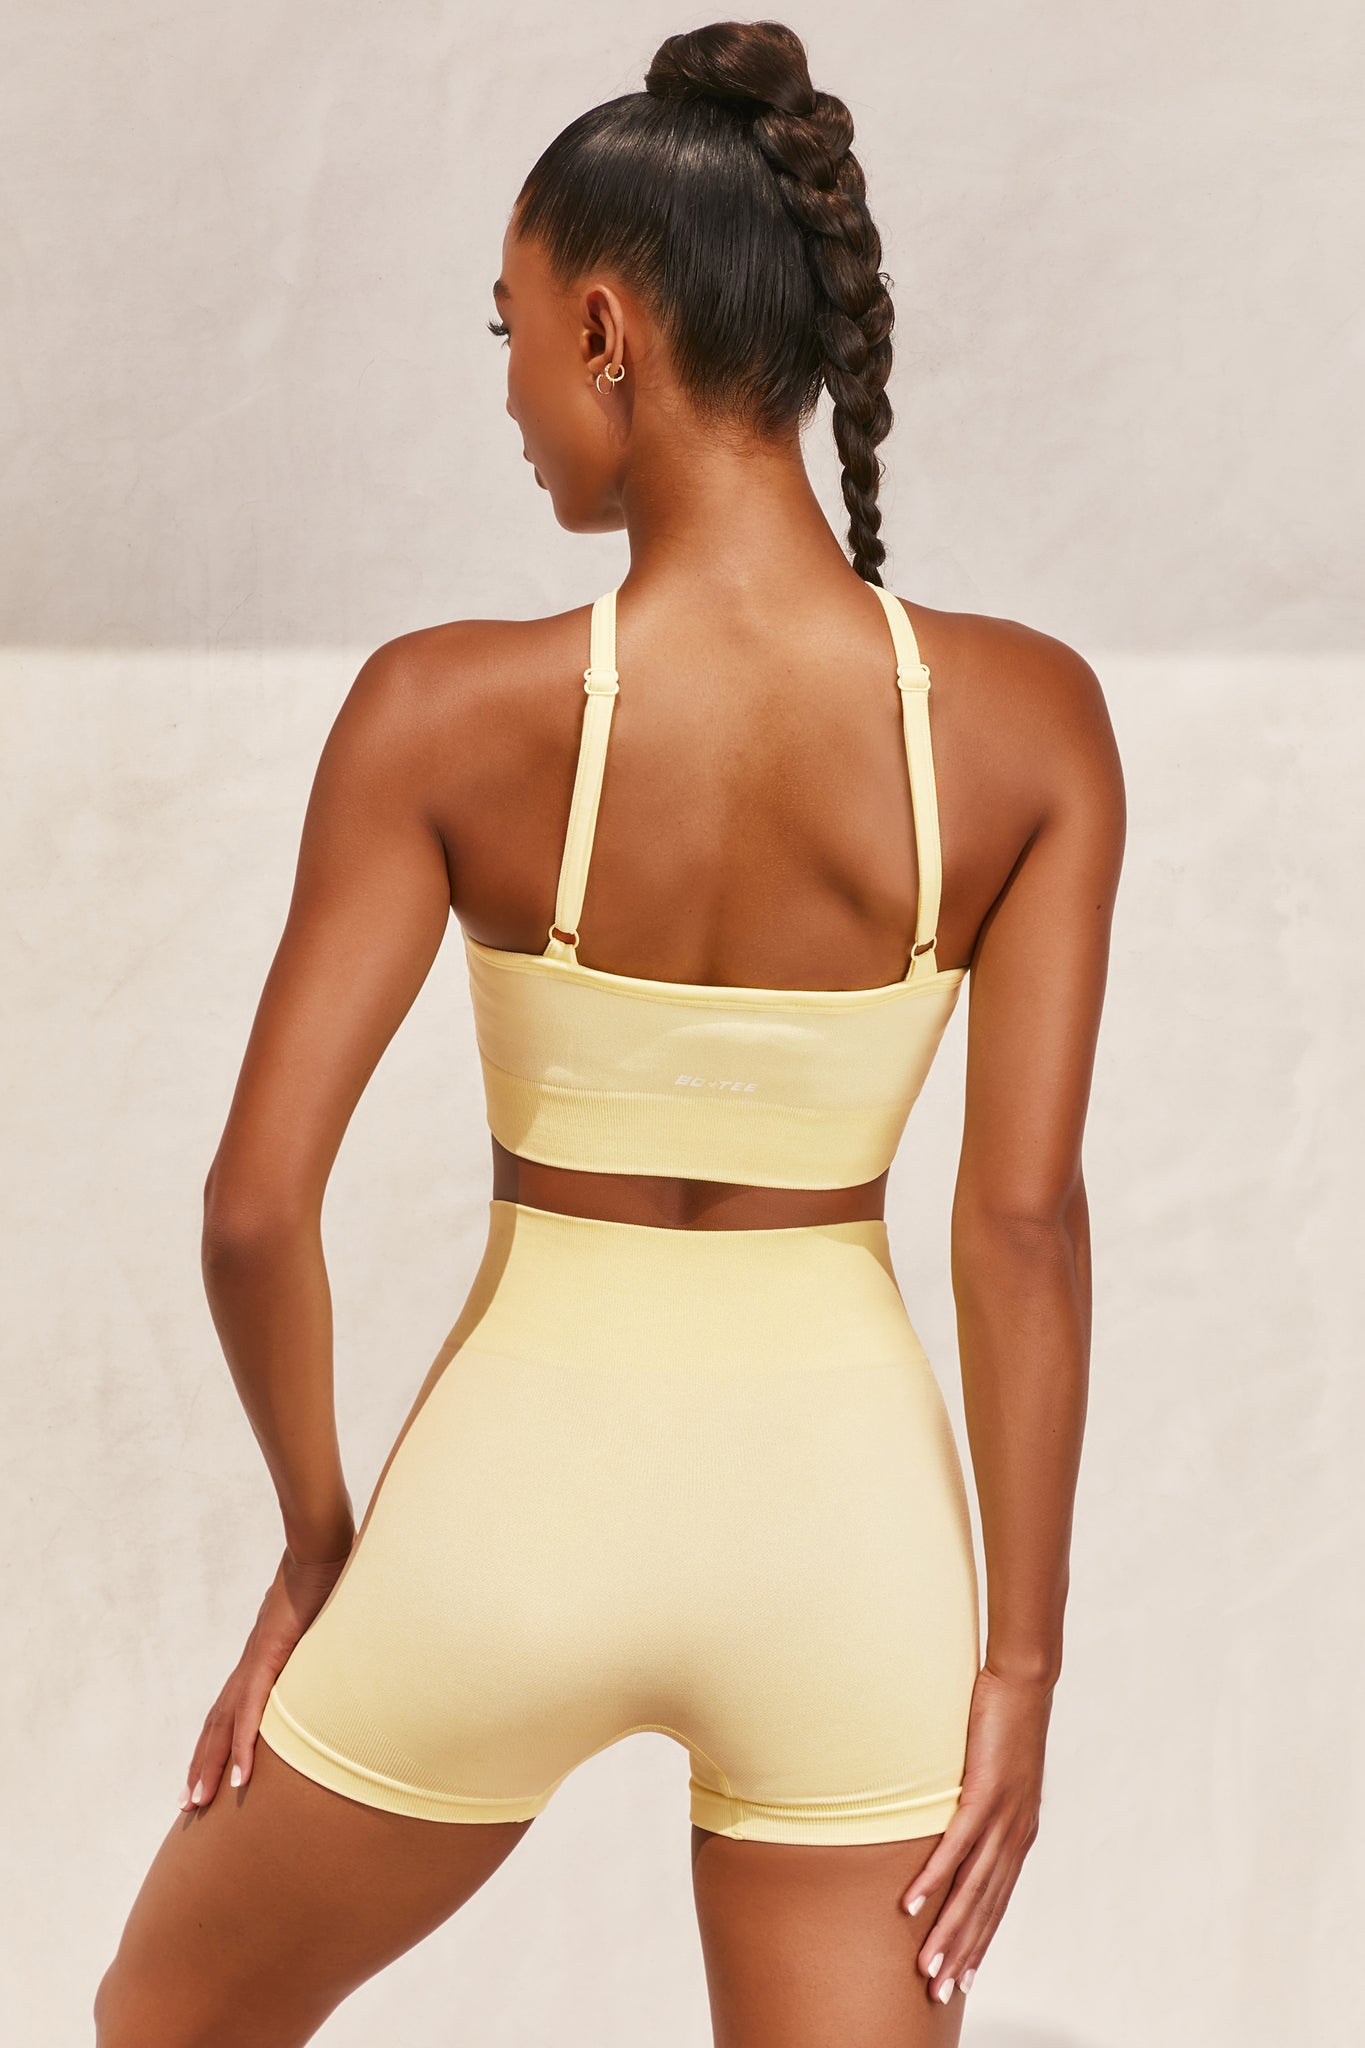 Plain lemon seamless sports bra with cross high-neck adjustable straps and ribbed underband. Image 3 of 6.